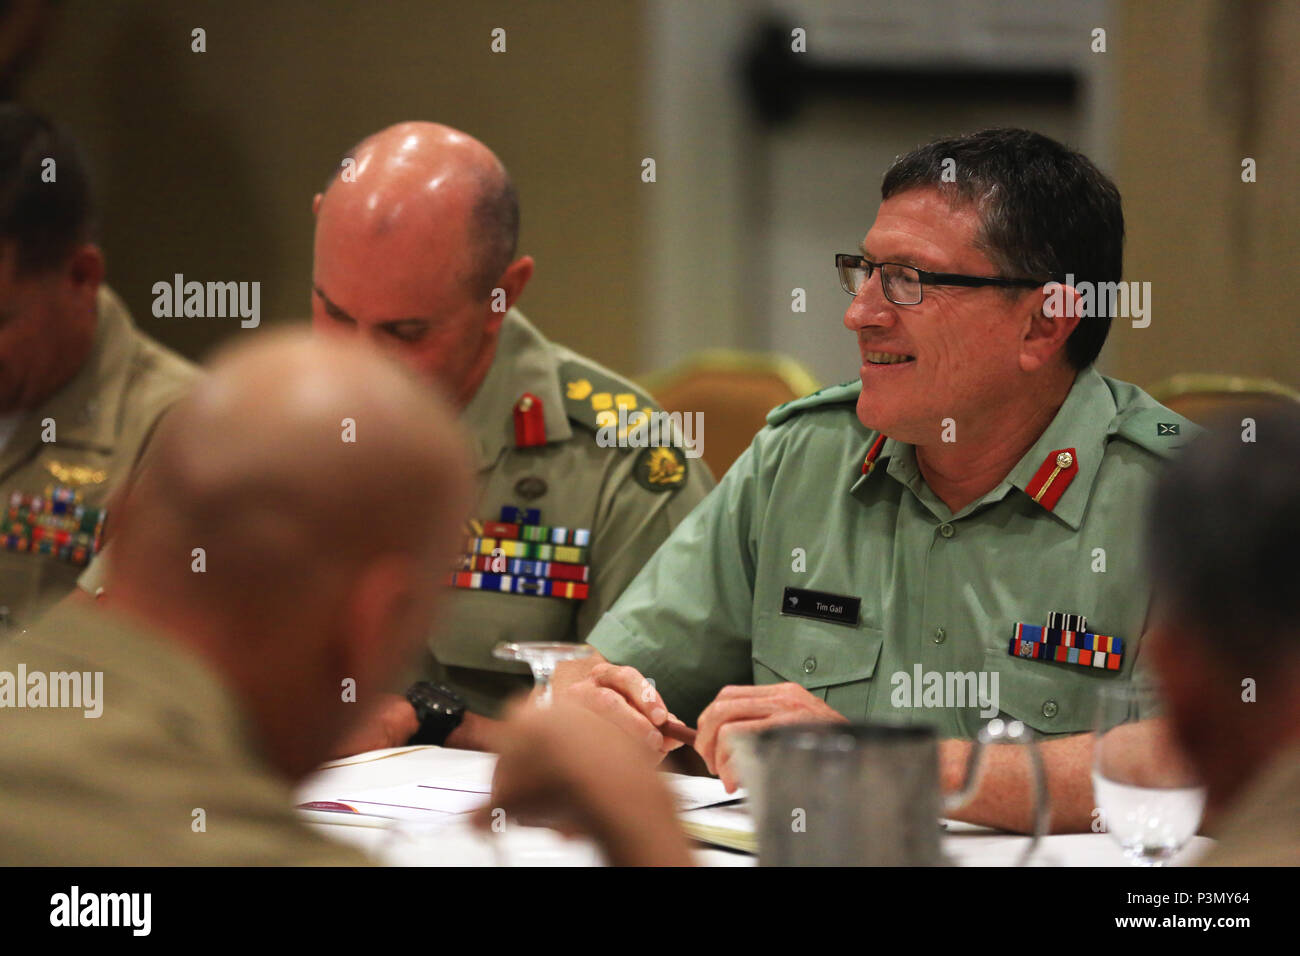 New Zealand Defense Force Maj. Gen. Timothy Gall, commander, Joint Forces New Zealand, speaks with U.S. Marine Corps Lt. Gen. John A. Toolan, commanding general, Fleet Marine Force, Pacific, during a bilateral meeting during Pacific Command Amphibious Leaders Symposium 2016 in San Diego, Calif., July 11, 2016. Closer military-to-military bonds facilitate clear lines of communication, and foster a spirit of cooperation to meet regional and global challenges for mutual benefits. More than 20 allied and partnered nations, including the U.S. are participating to strengthen working relationships ac Stock Photo